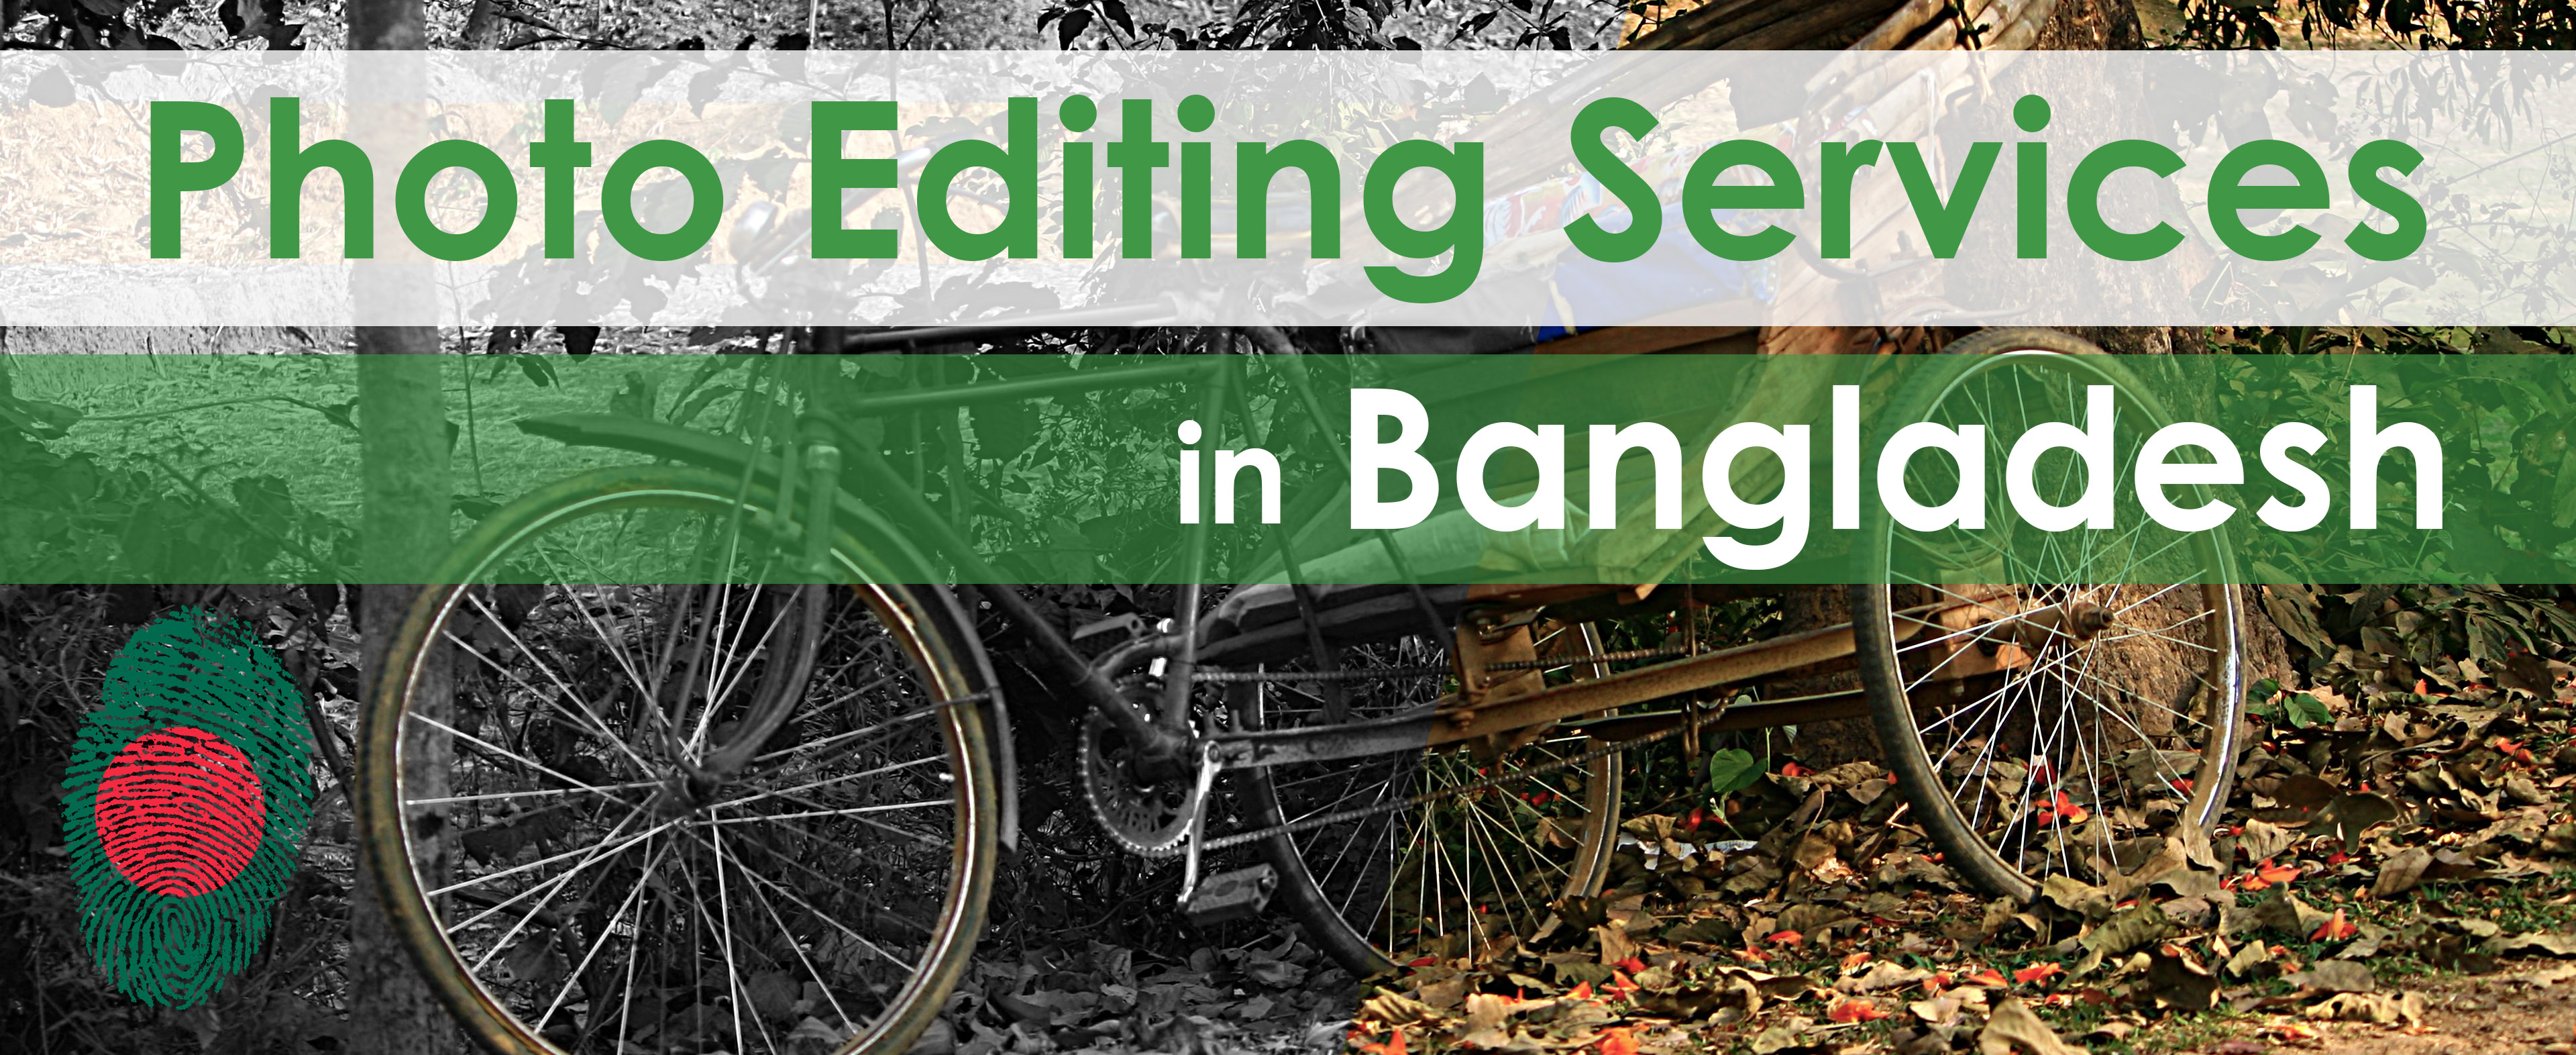 Photo Editing Services in Bangladesh